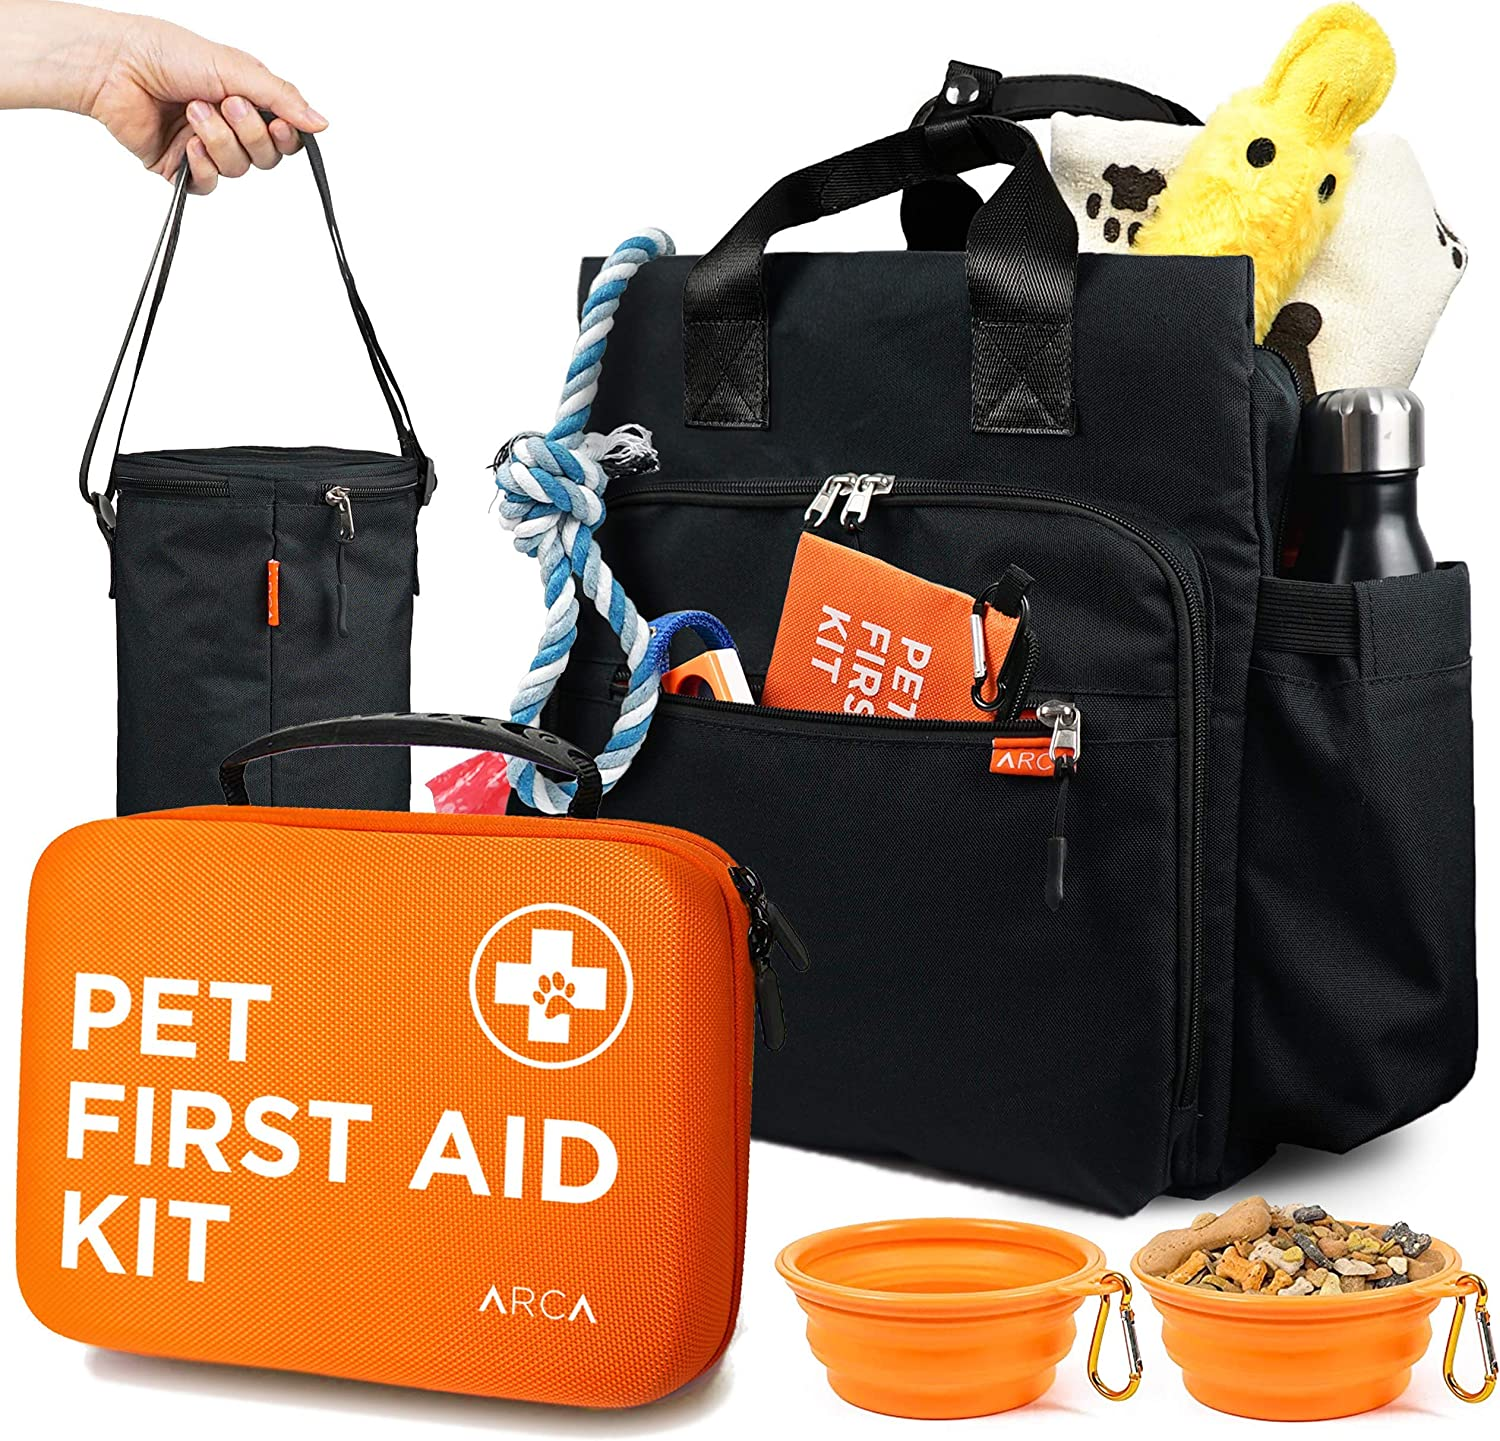 ARCA PET Cat & Dog First Aid Kit with Pet Travel Backpack -1 Large Dog Food Bag, 2 Collapsible Bowls - Emergency Collar and Pet Thermometer & Bonus Mini Pouch [100 Pieces]